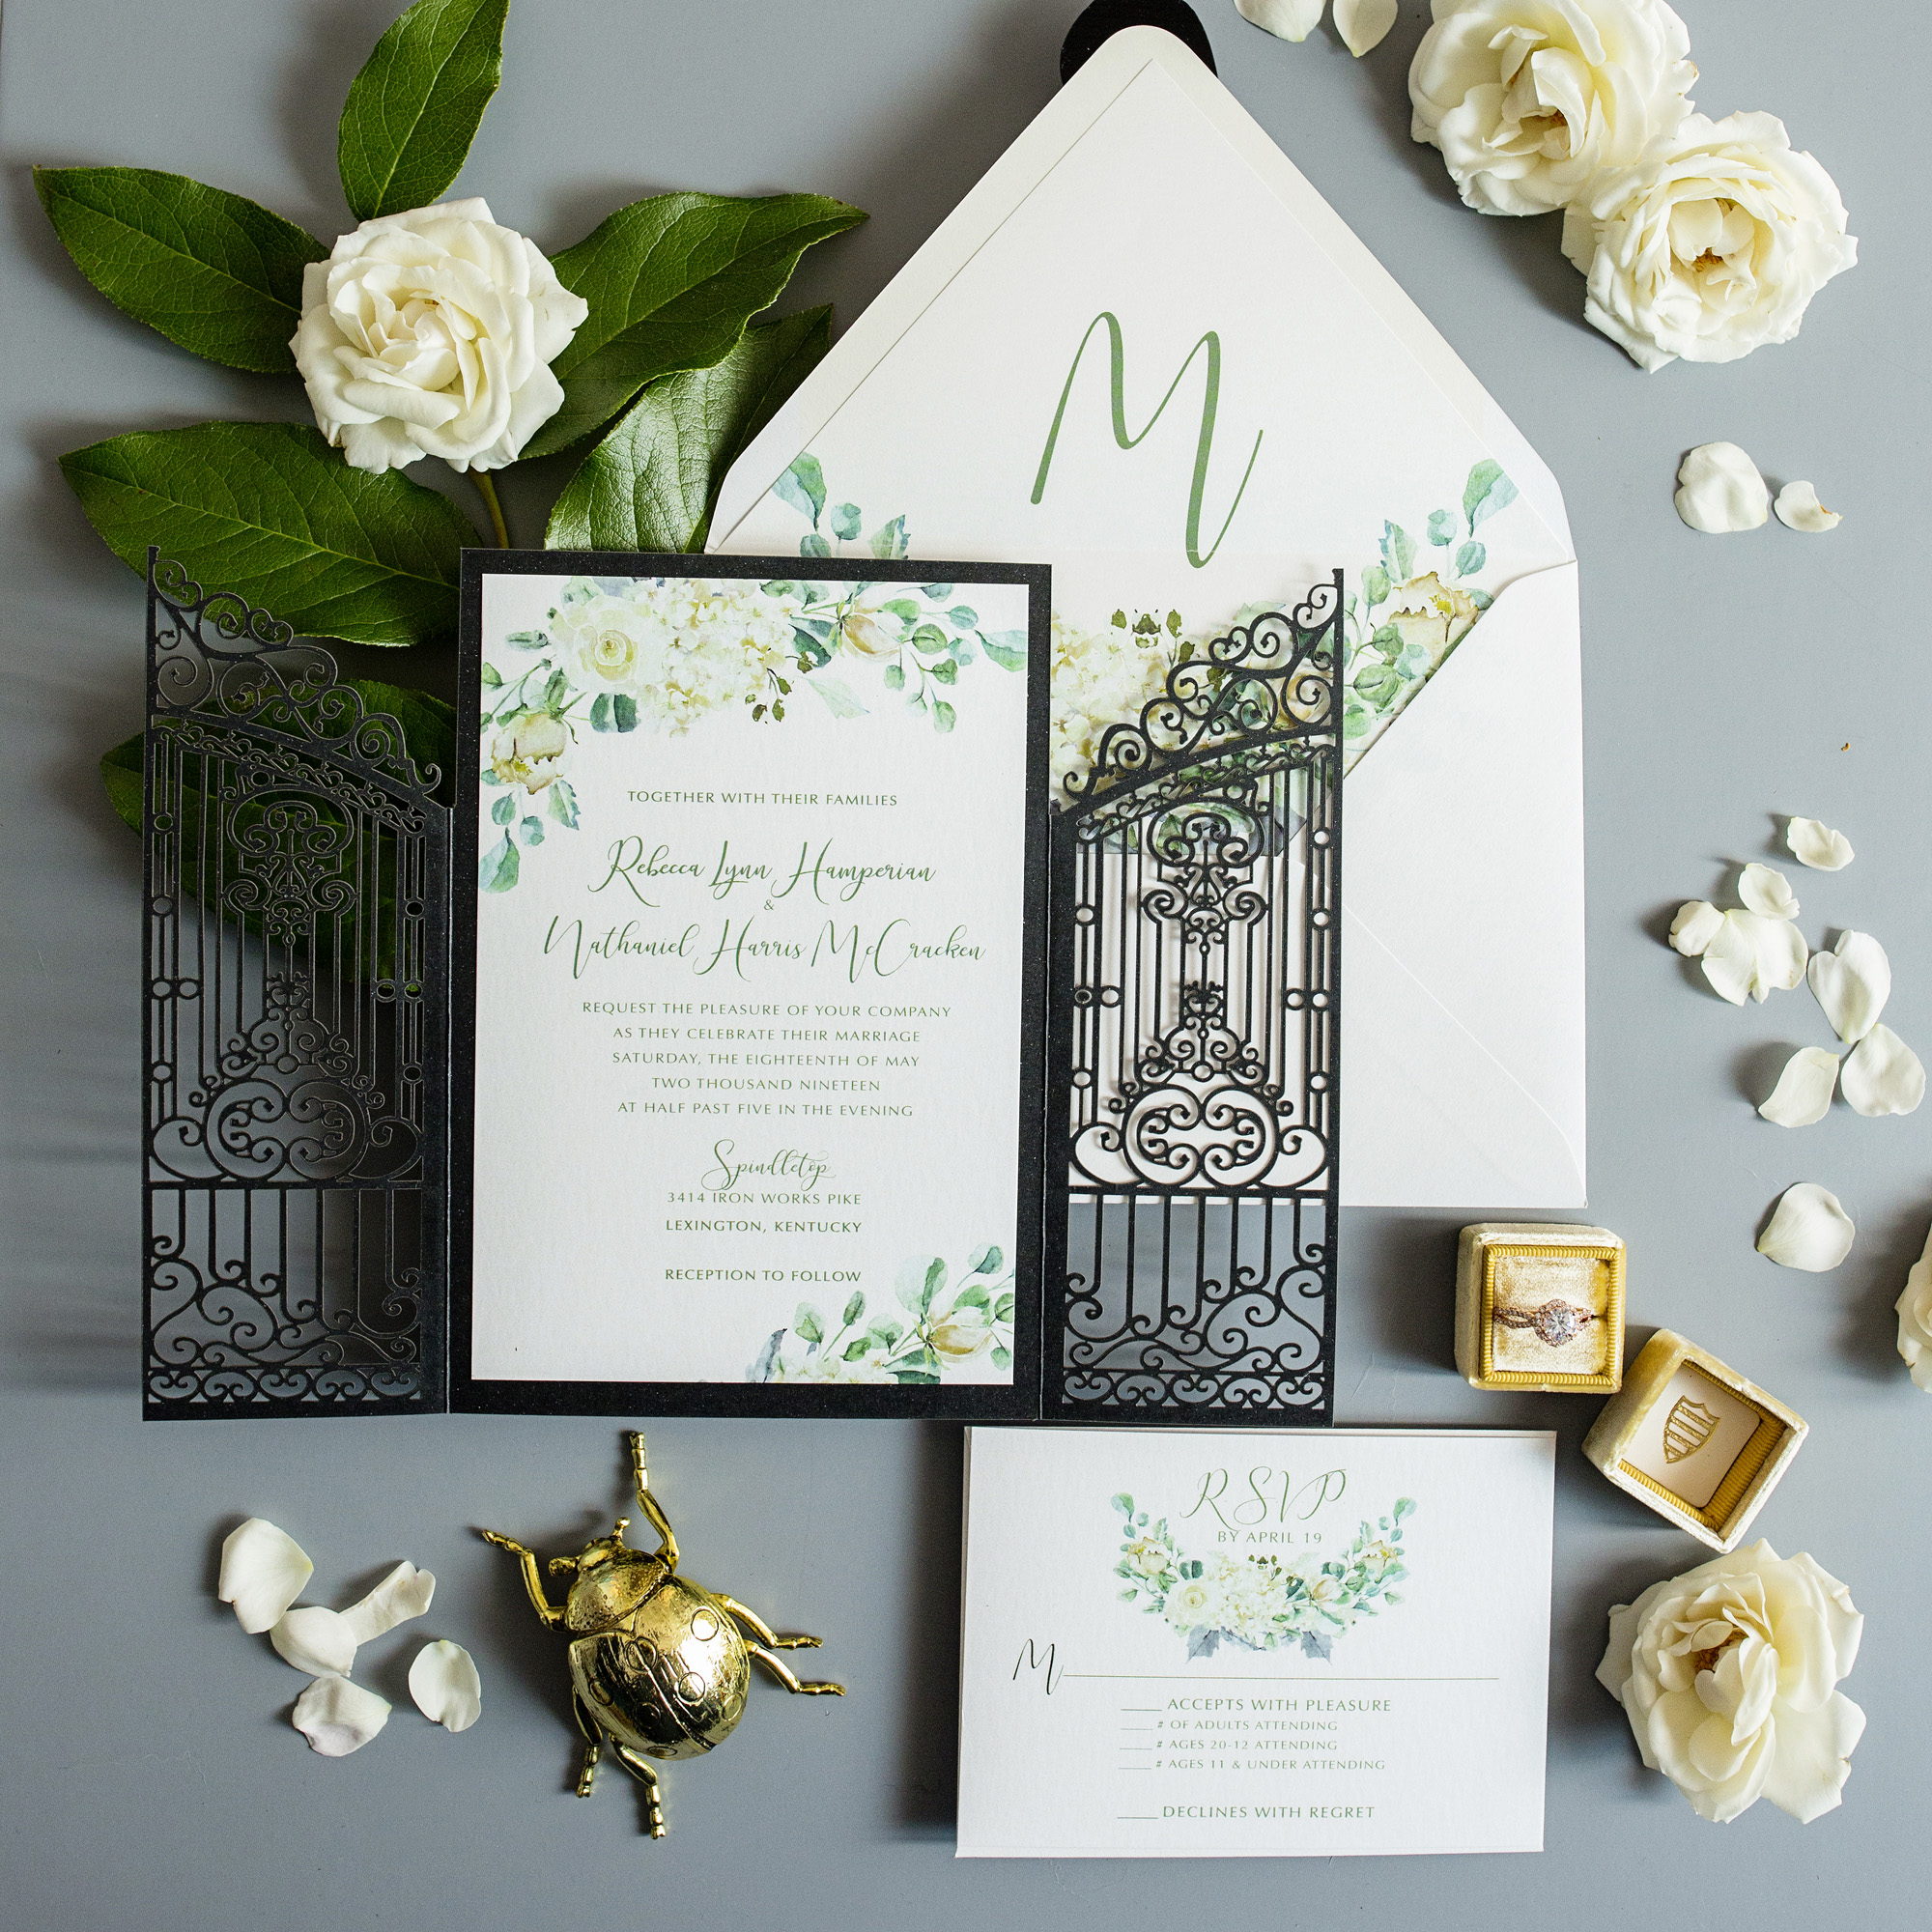 Seriously_Sabrina_Photography_Commercial_Simply_Done_Invites_2019_March_048